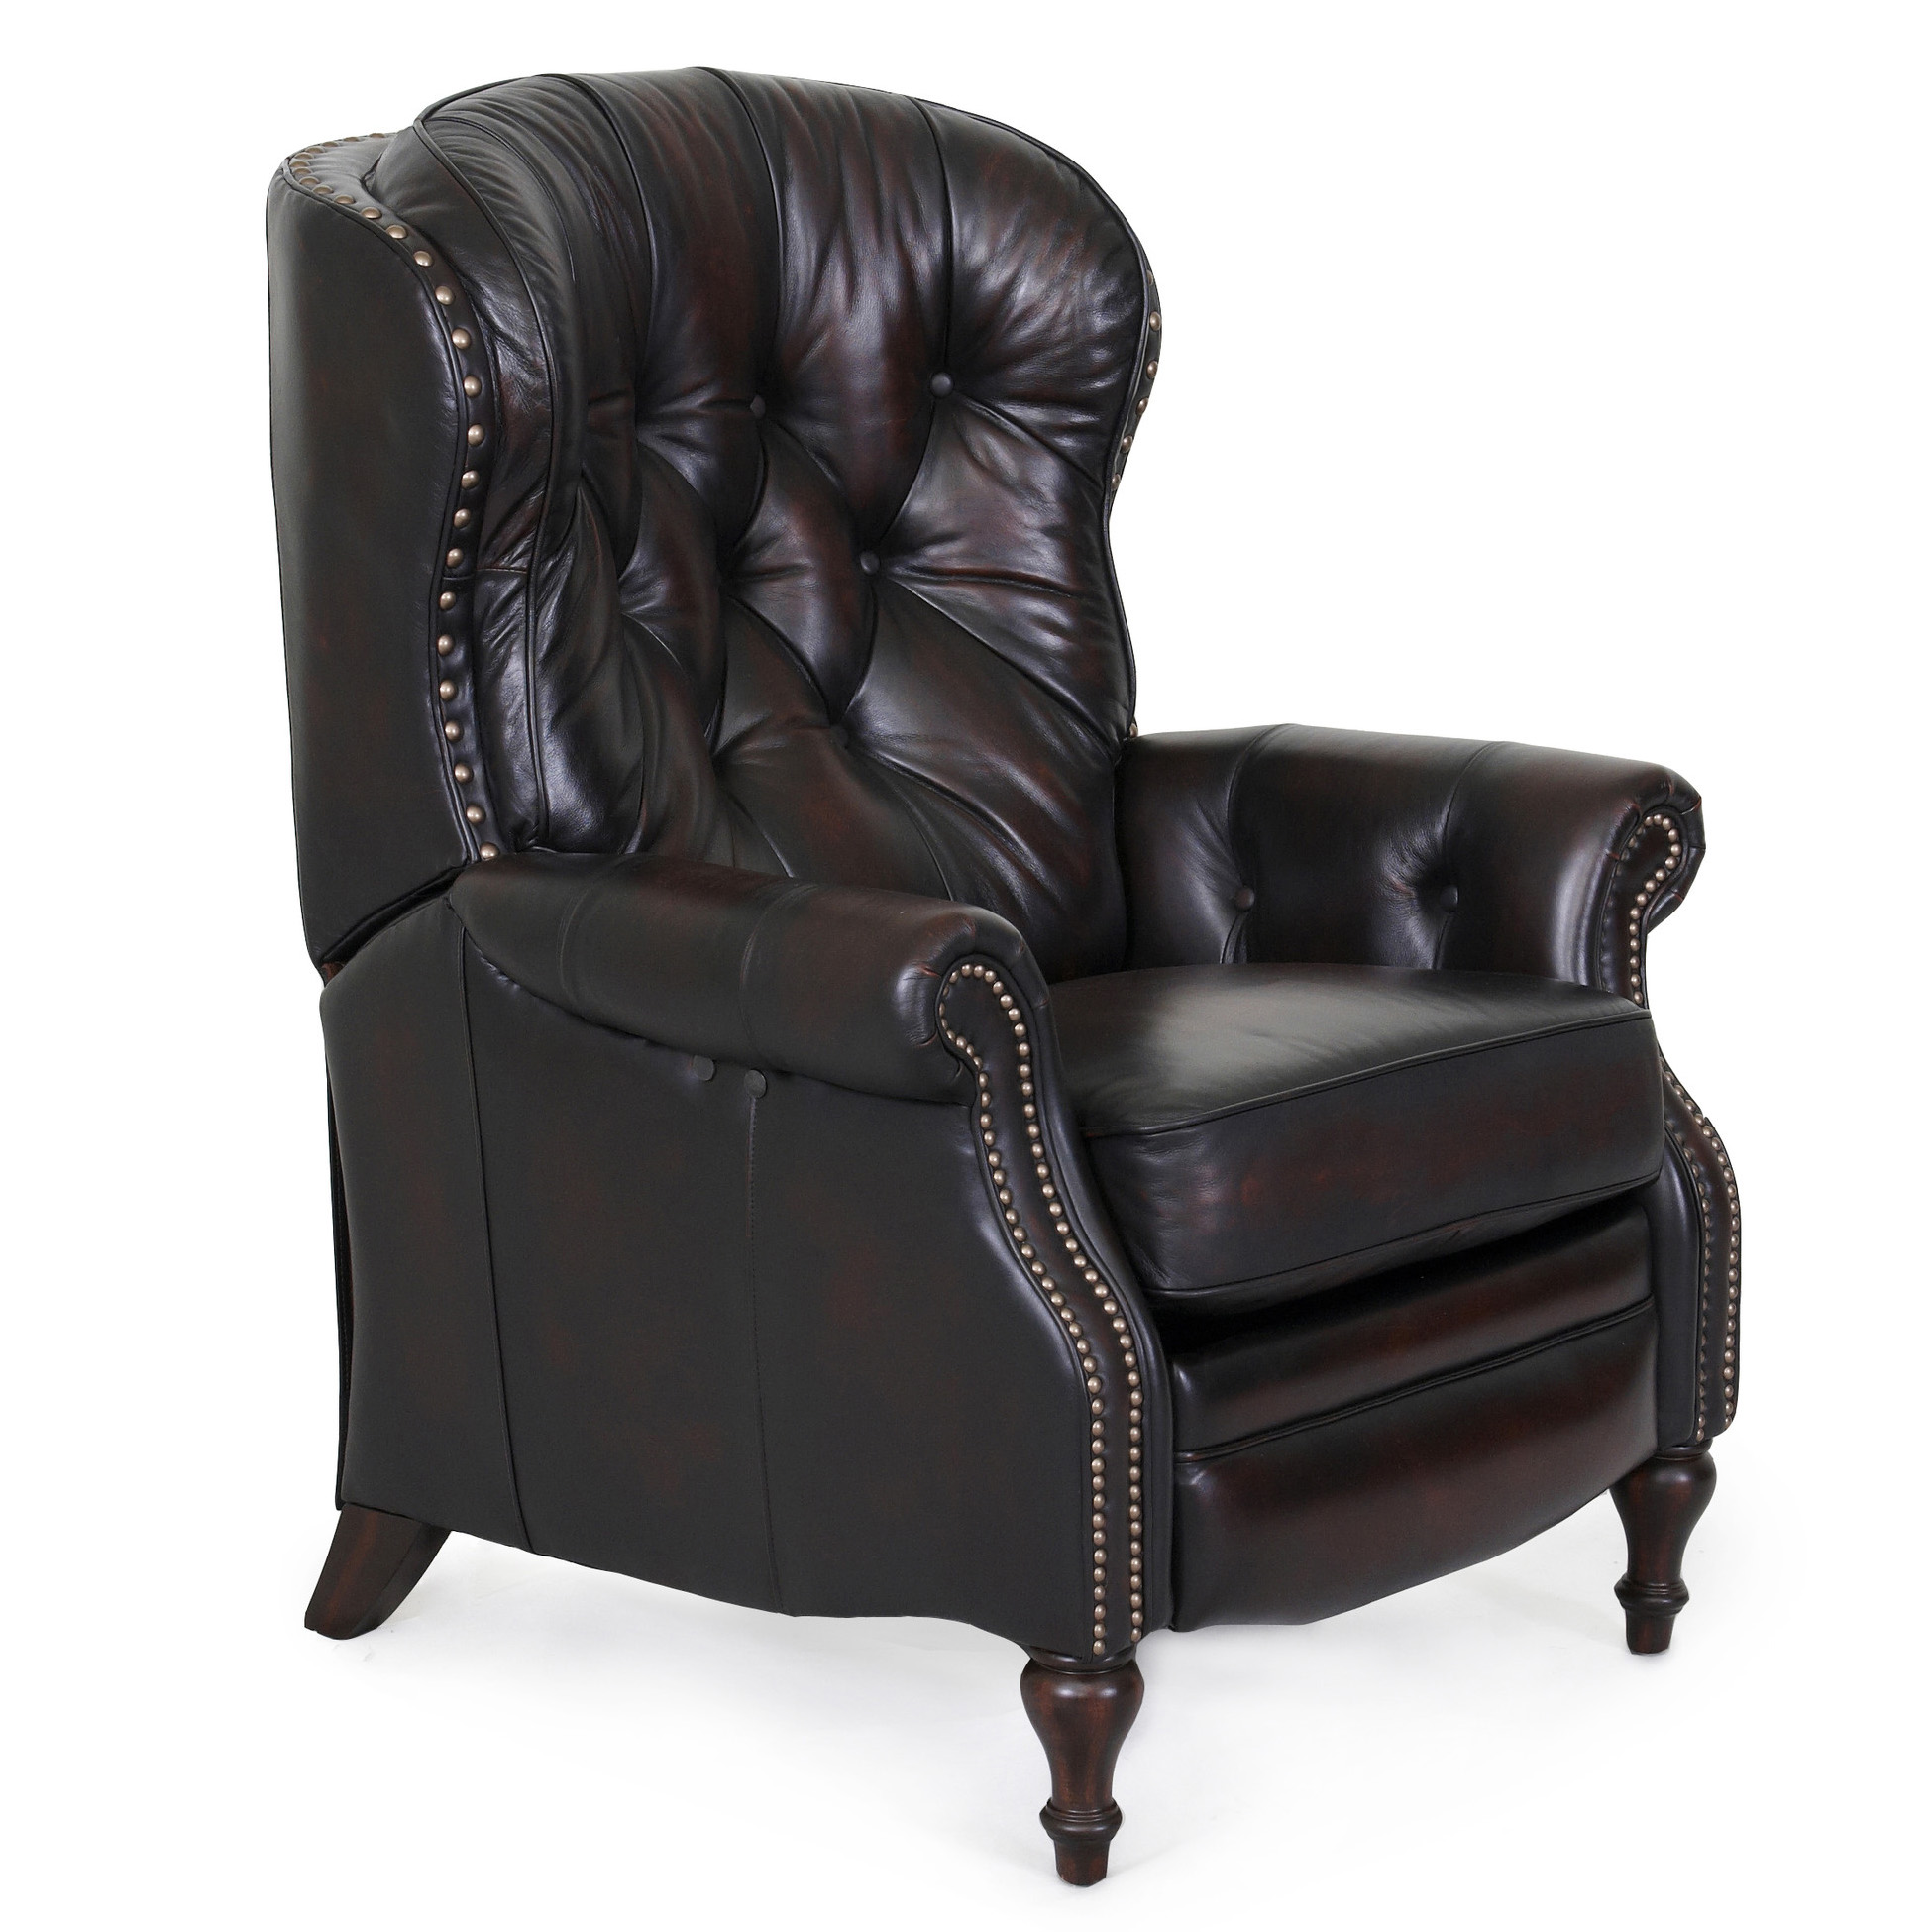 Chair: Barcalounger Kendall II Recliner Chair